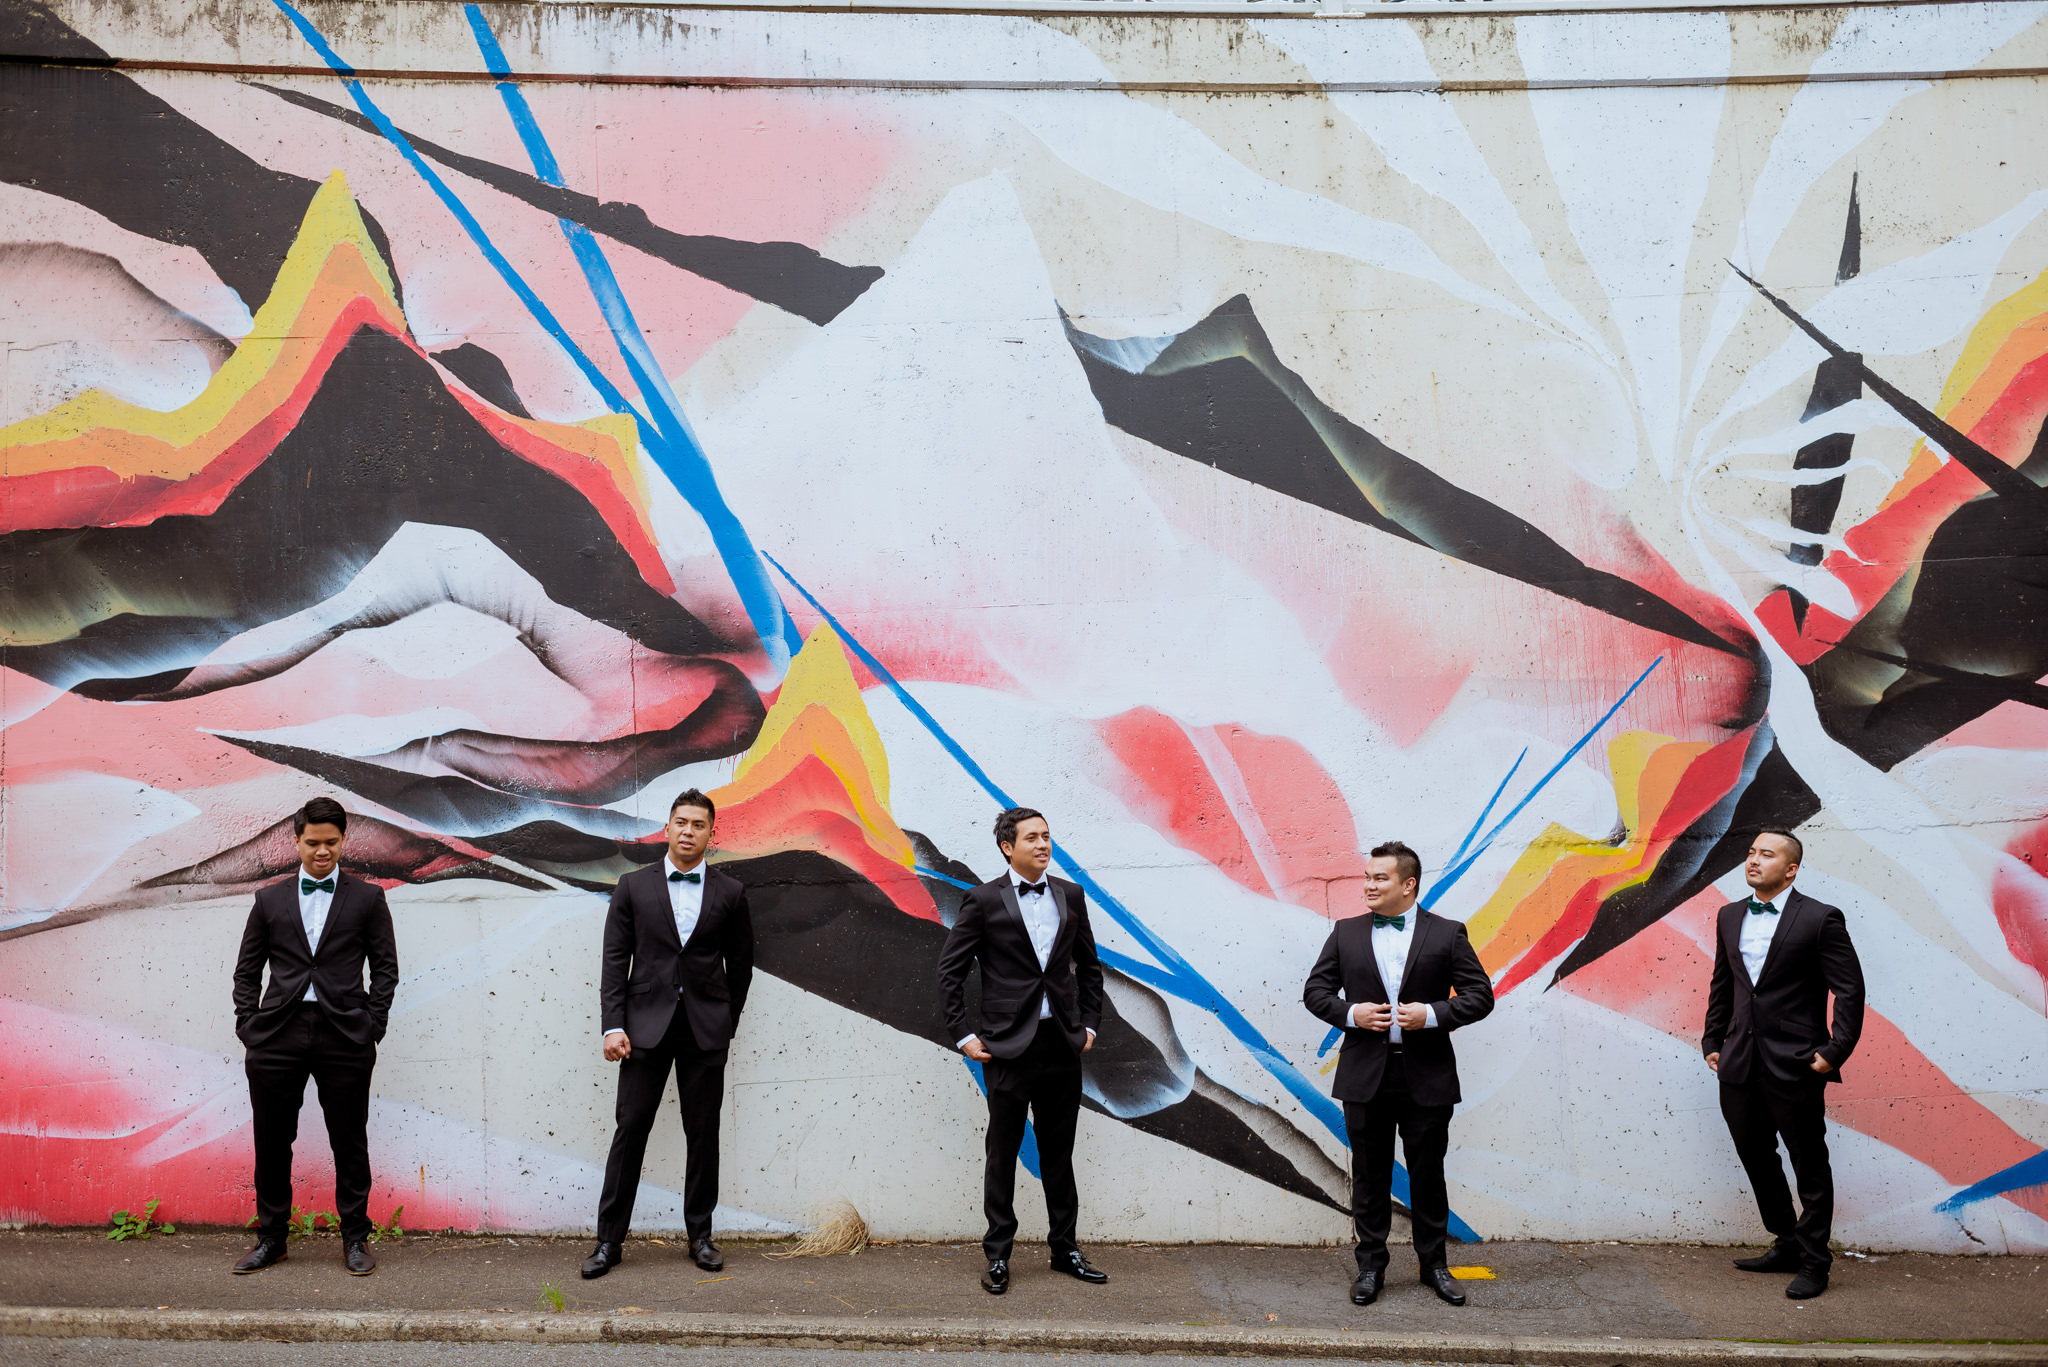 Groom and groomsmen posing in front of large graffiti wall